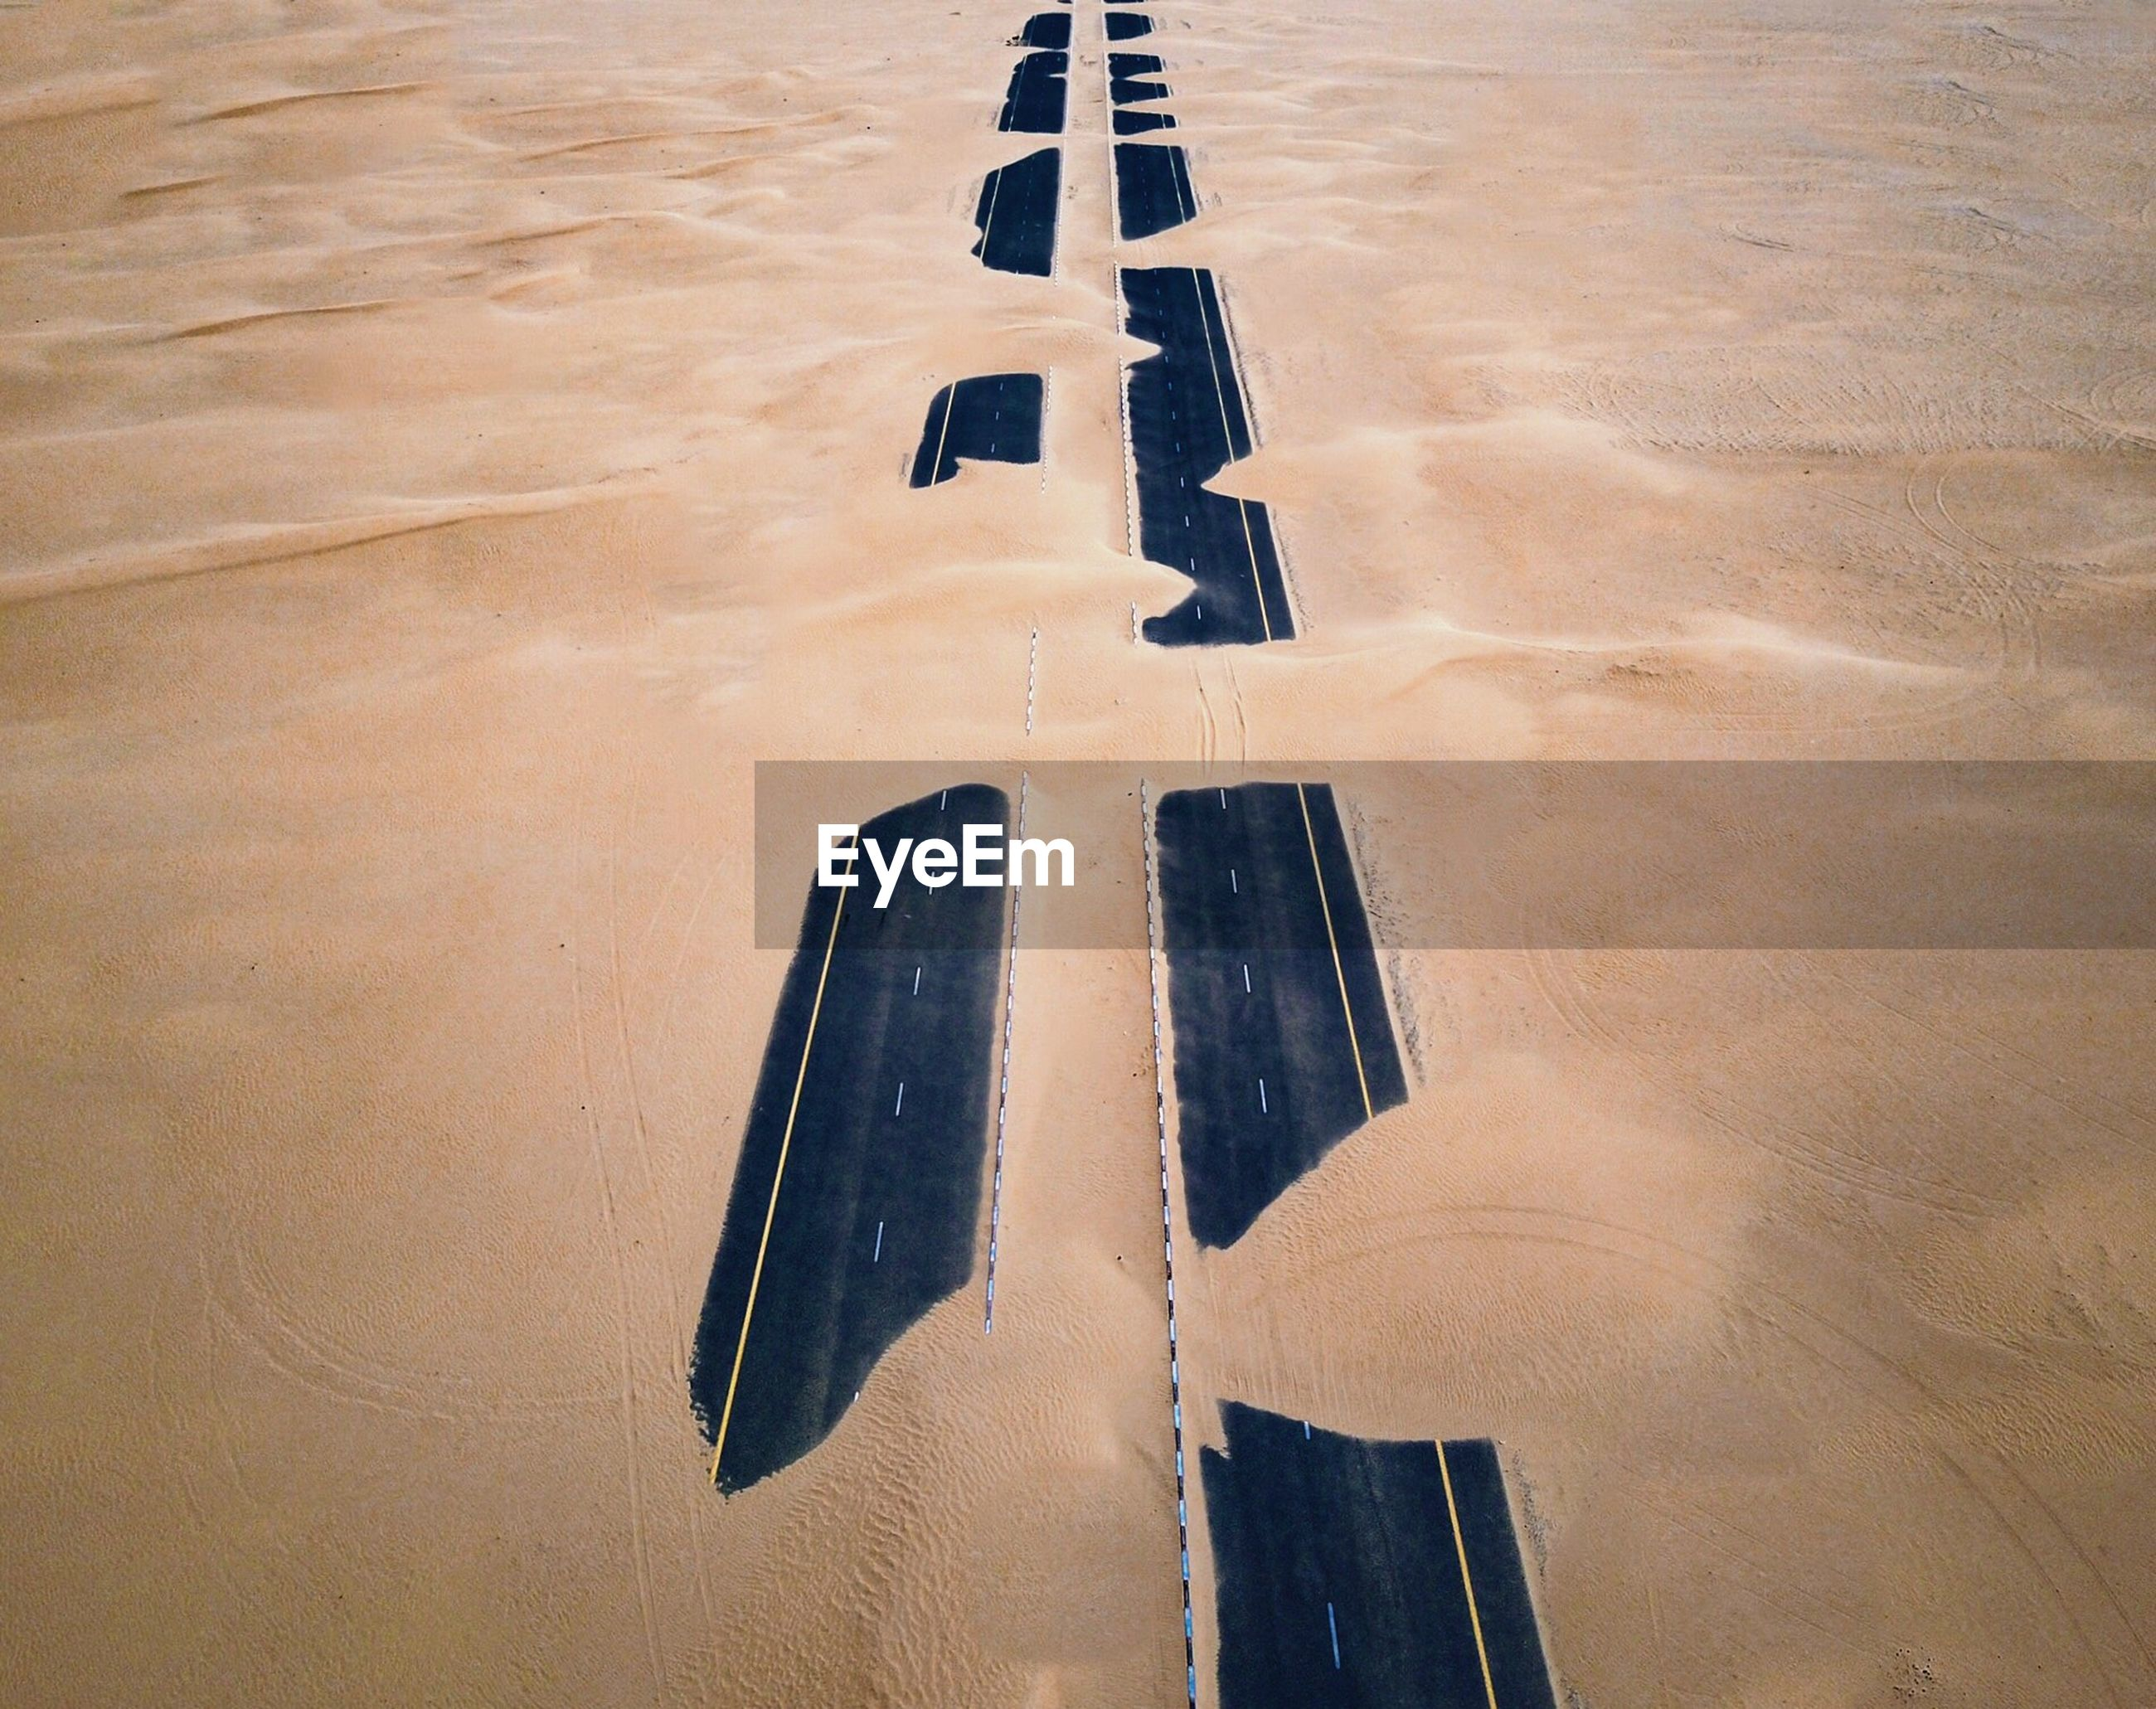 High angle view of two lane road in desert